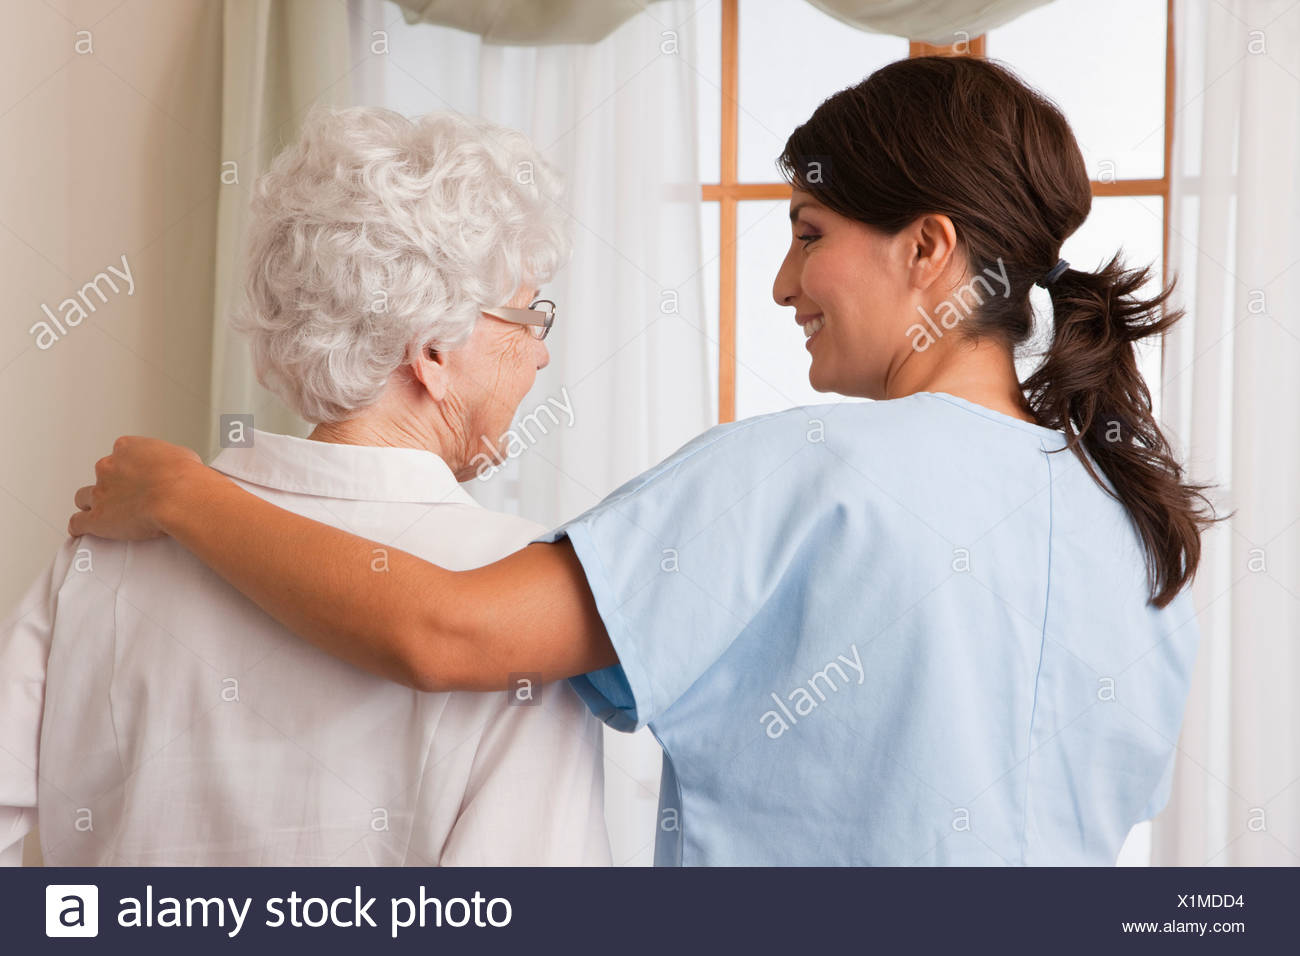 USA, Illinois, Metamora, Rear view of female nurse consoling senior woman - Stock Image